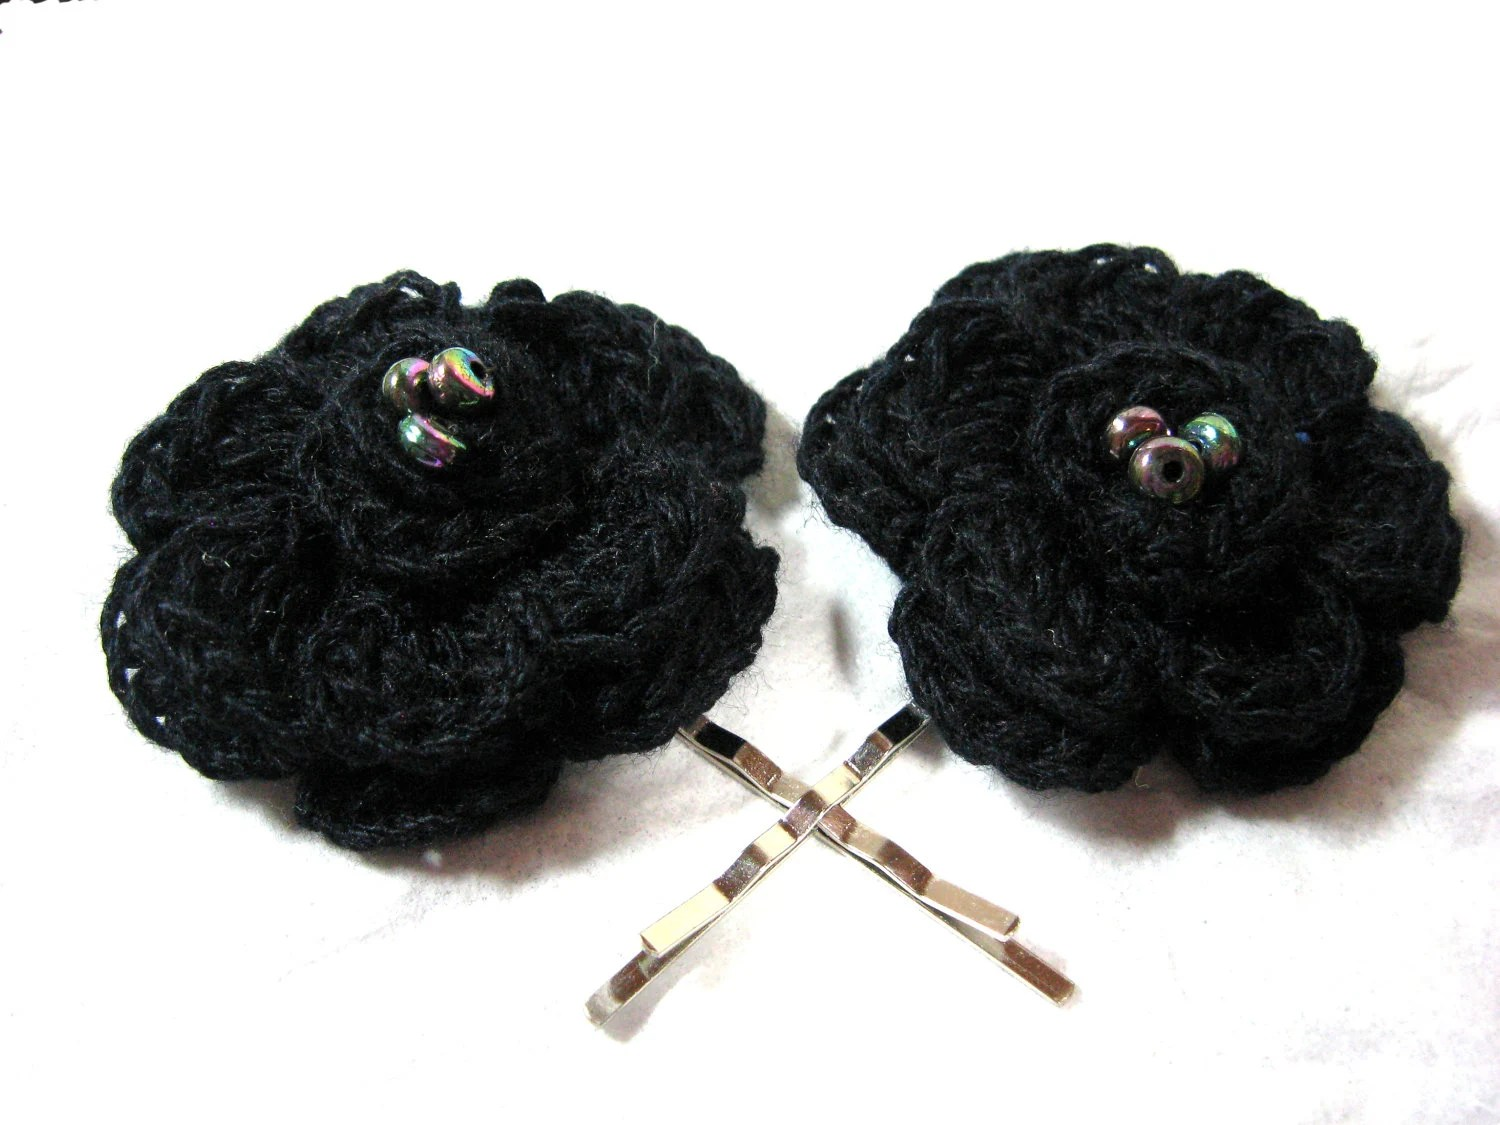 Flower Hair Clip Black Crocheted Beaded Bobby Pin 2 Piece Set - Stitcharific